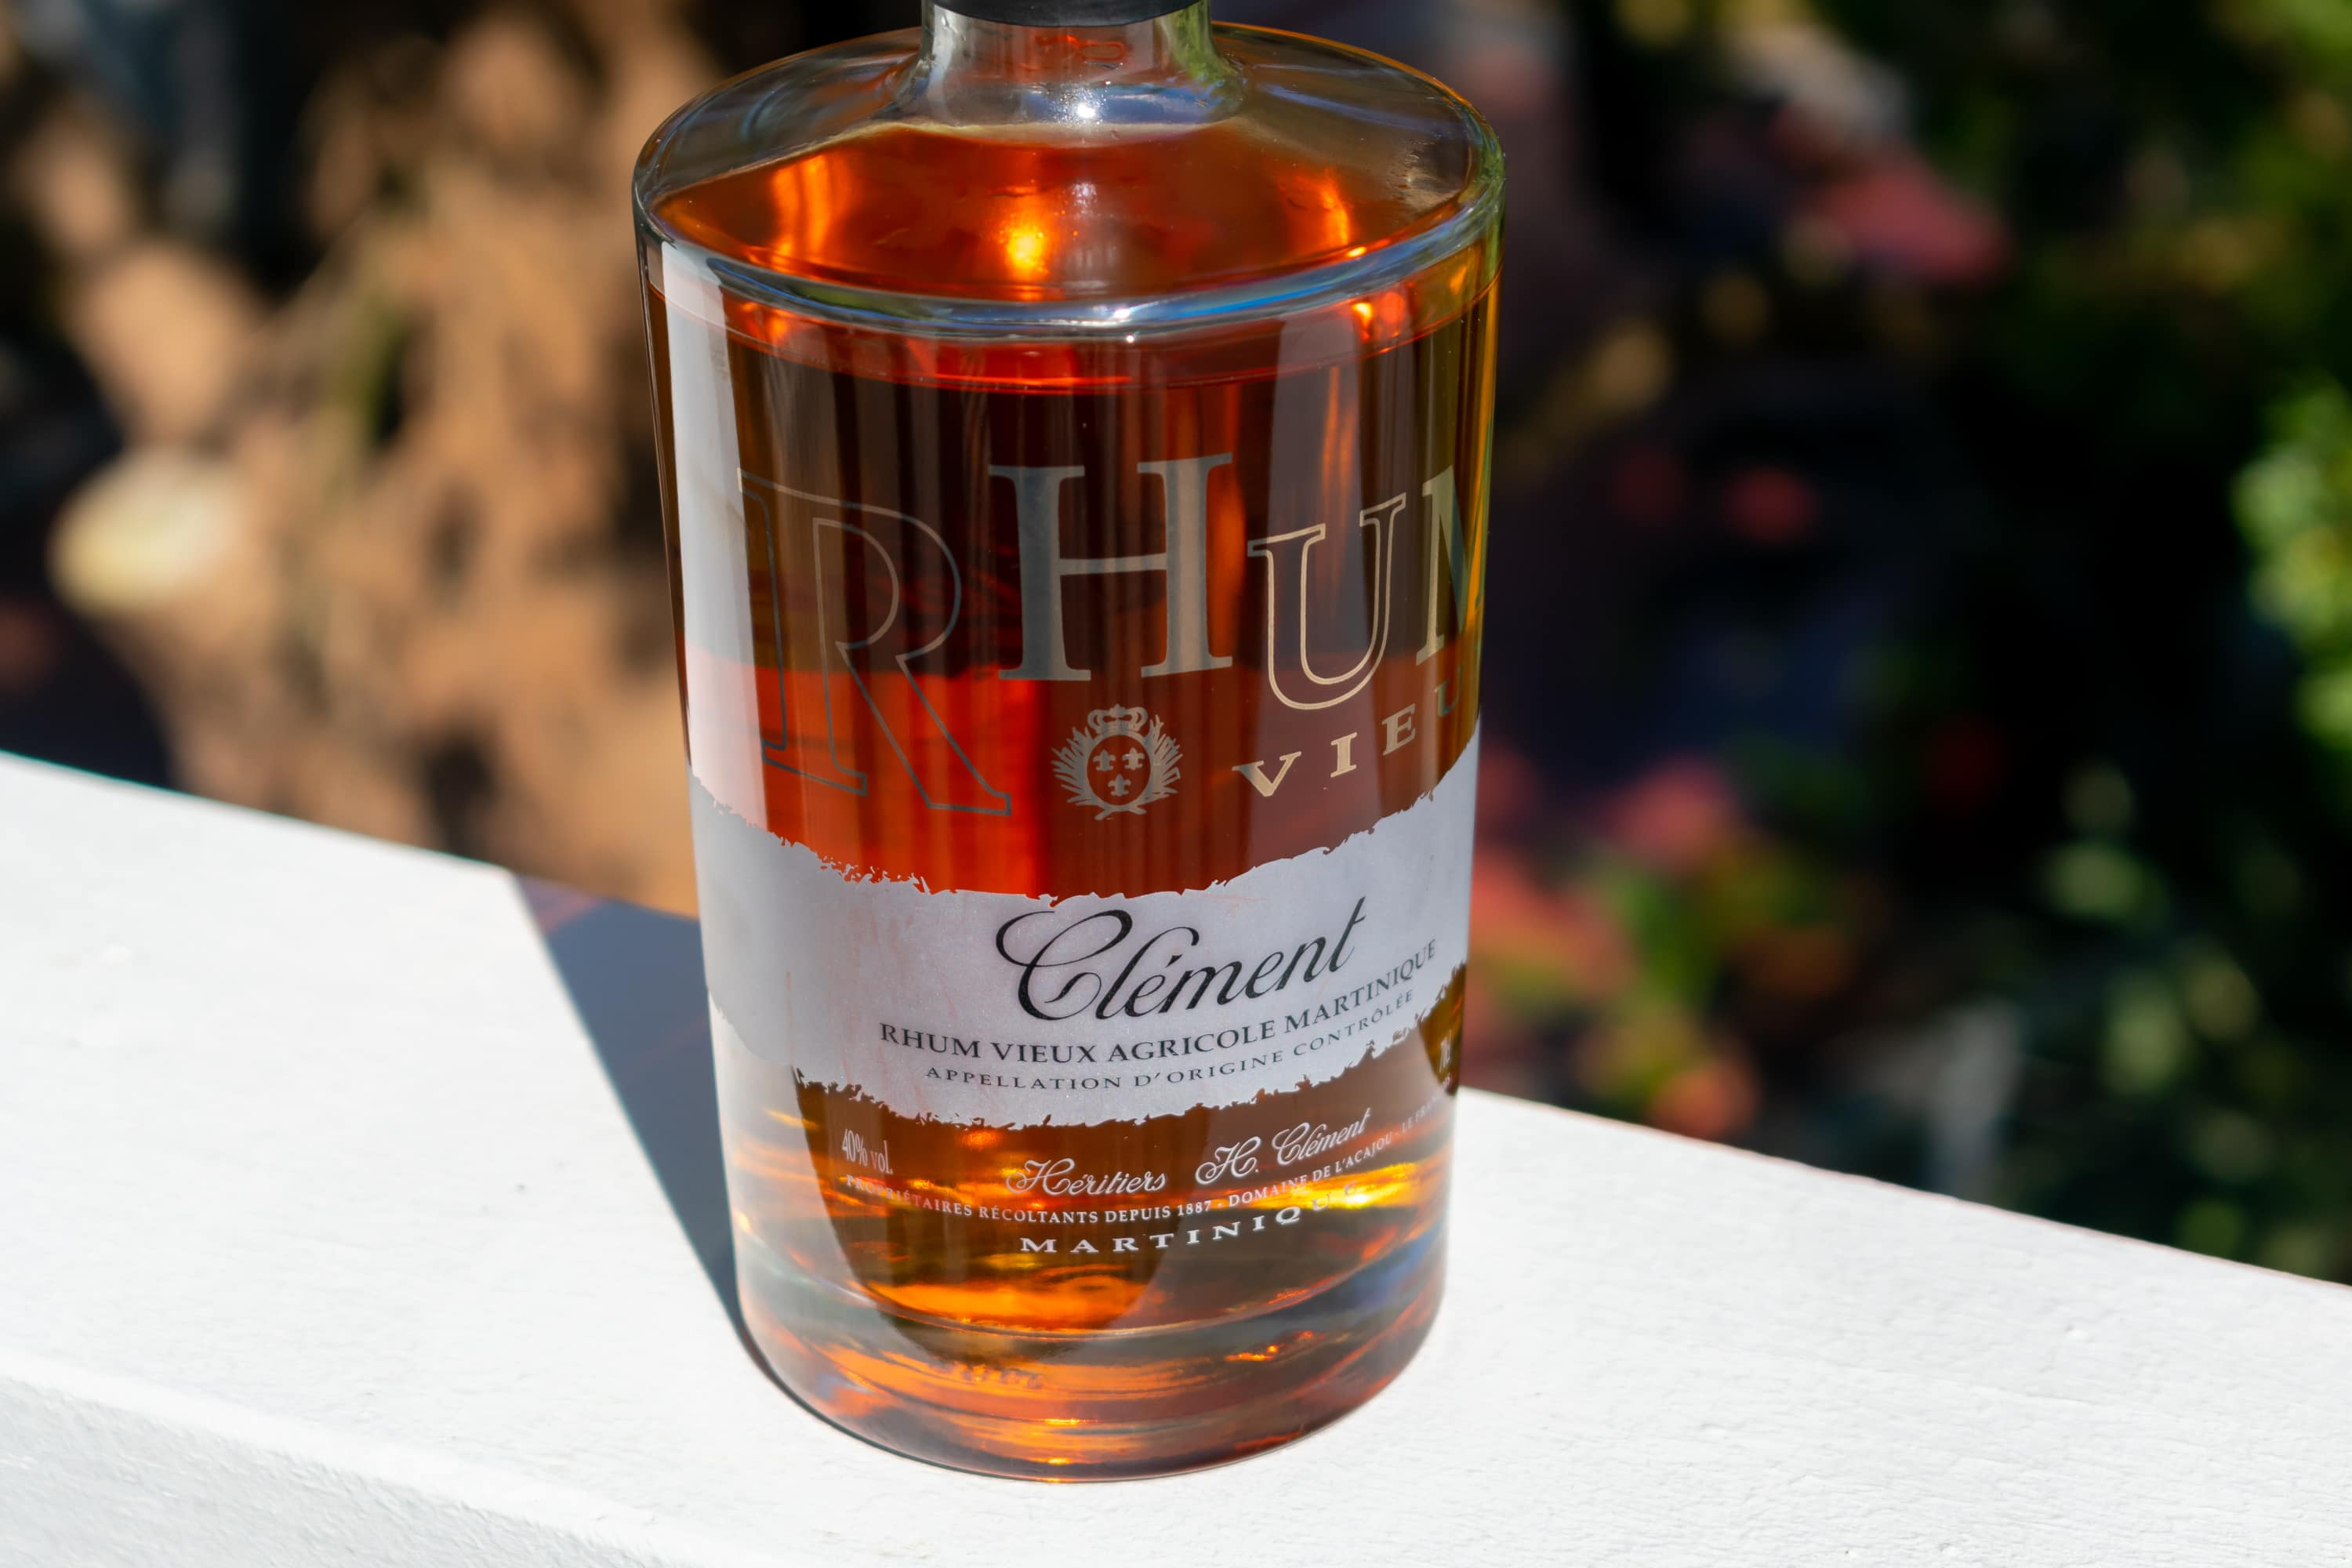 Rhum Clement Cuvee Festive from Martinique | SBPR